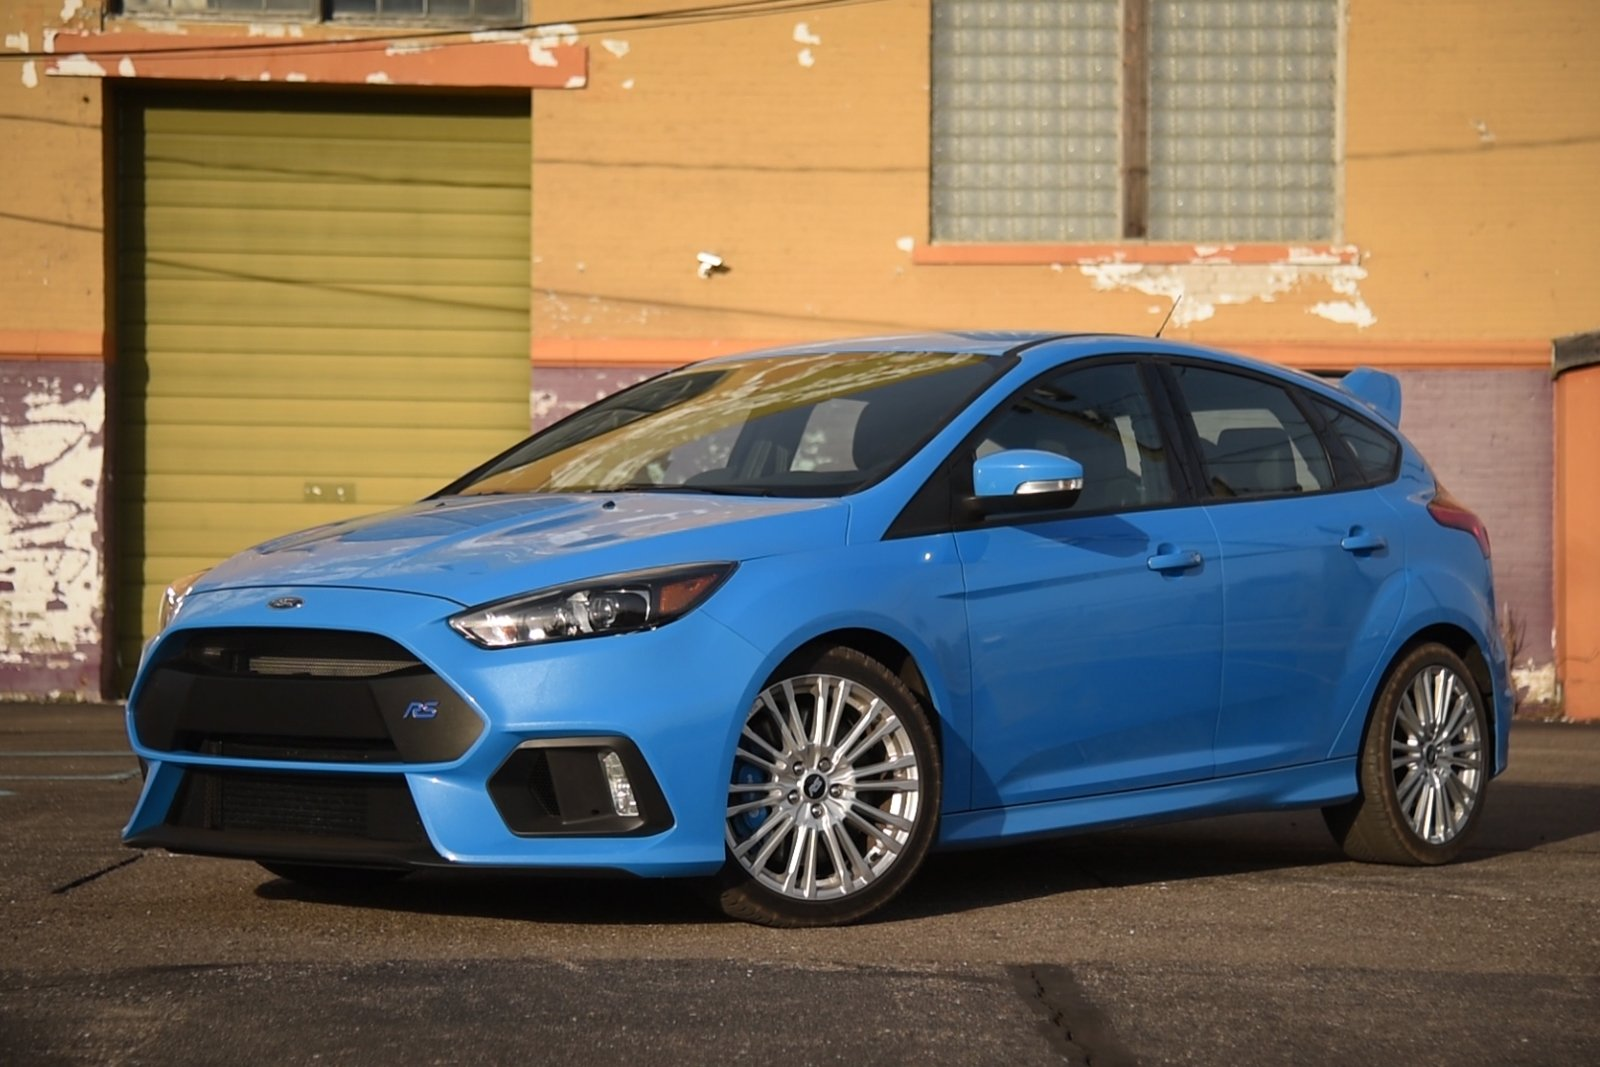 Juvenile Delinquency: 2018 Ford Focus RS Drift Stick Review